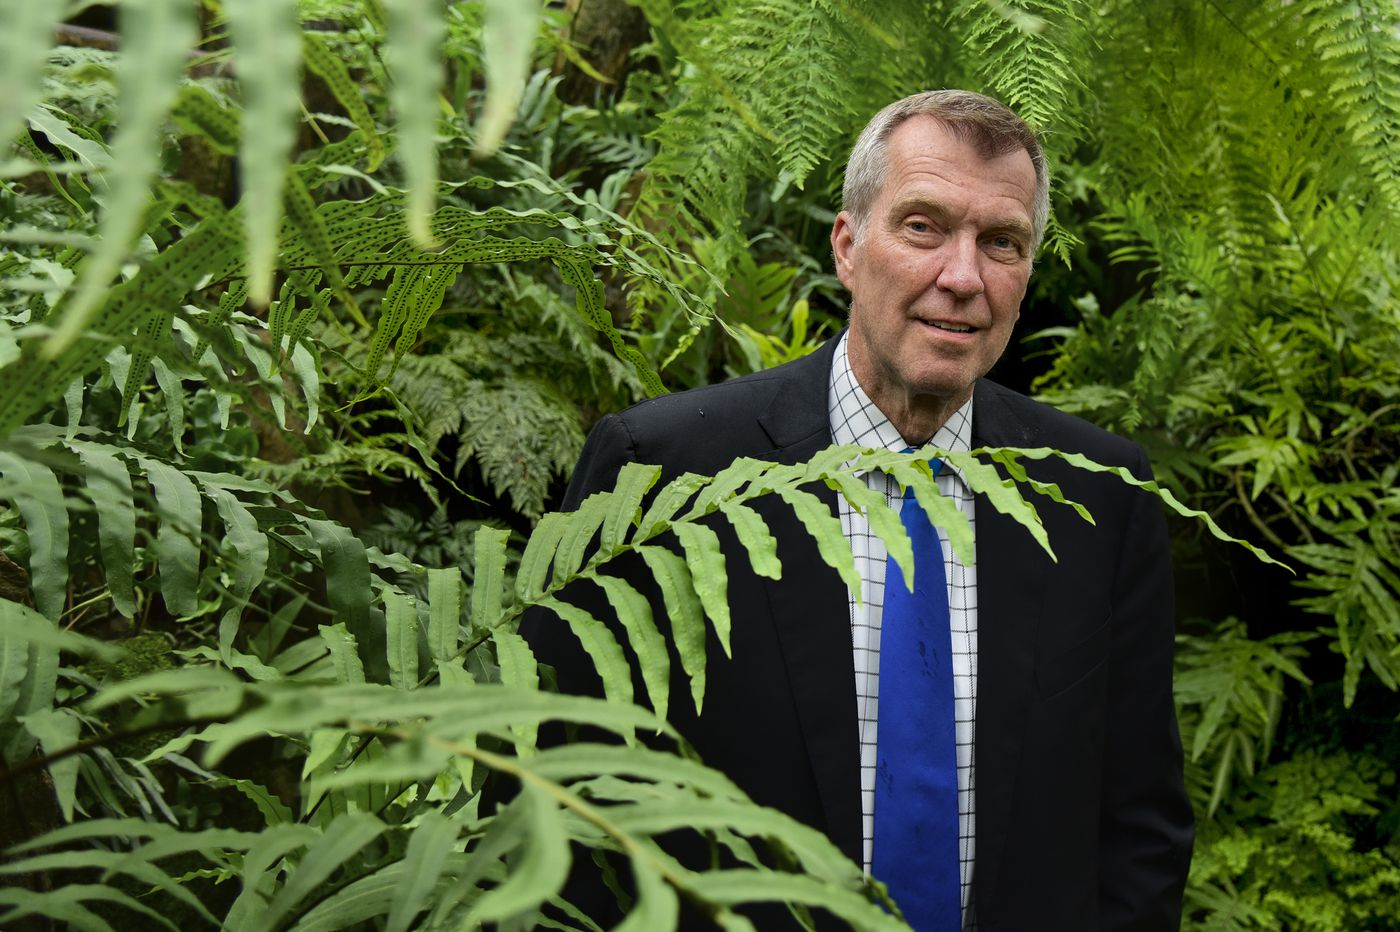 Head of Morris Arboretum retiring after more than 42 years, a rare tenure in botanical world